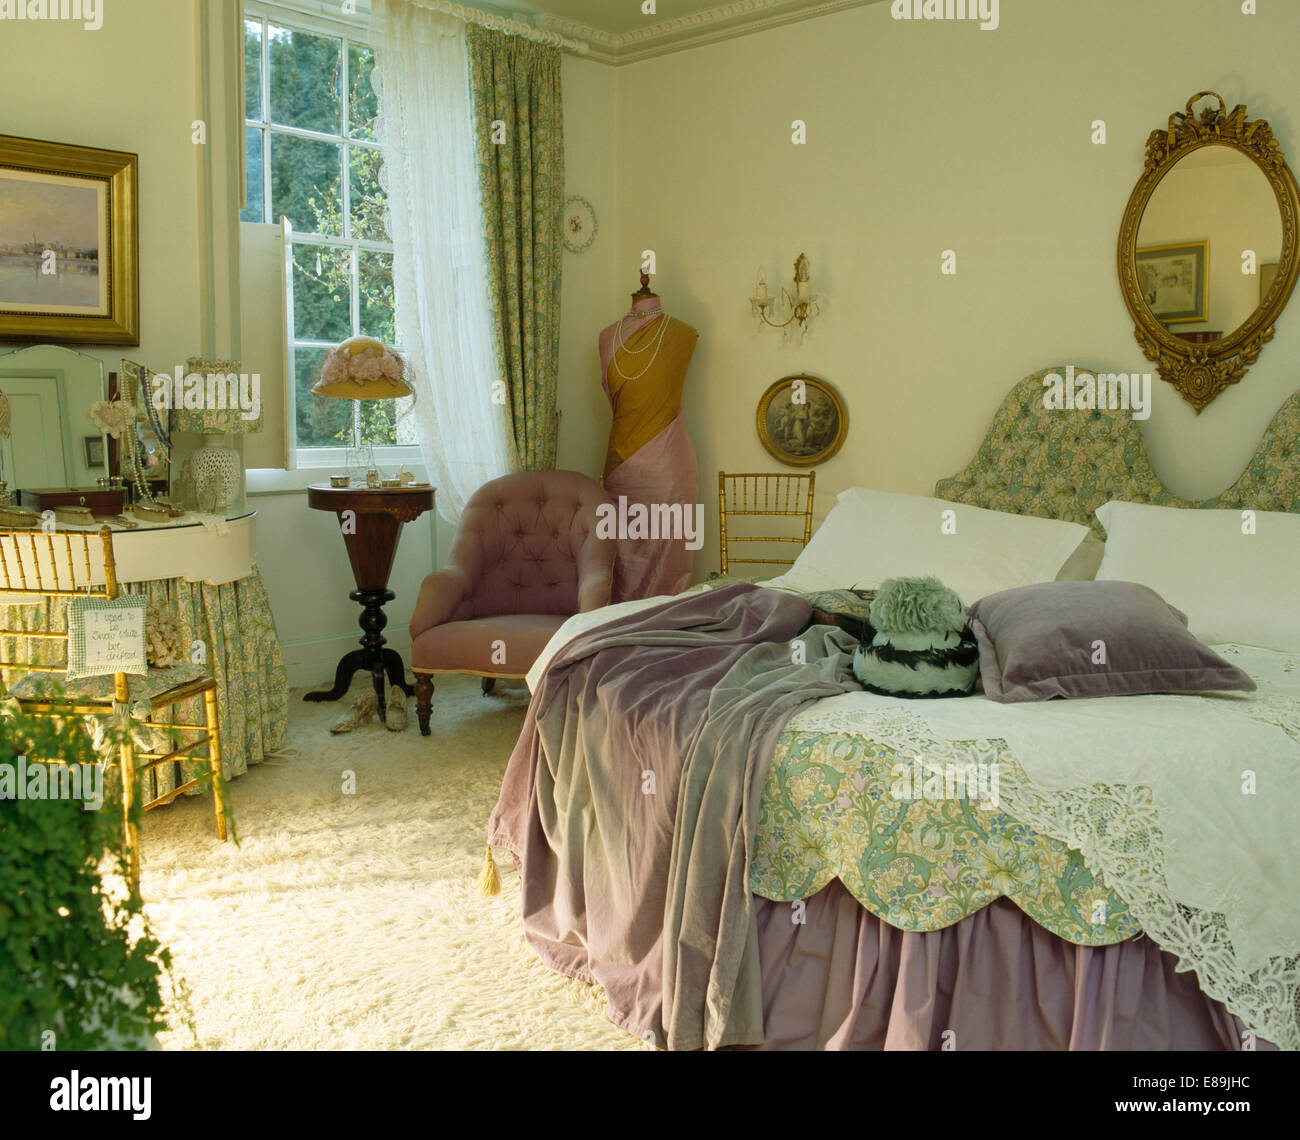 Mauve Bedroom Mauve Throw On Bed With Pale Green Quilt And Lace Bedcover In